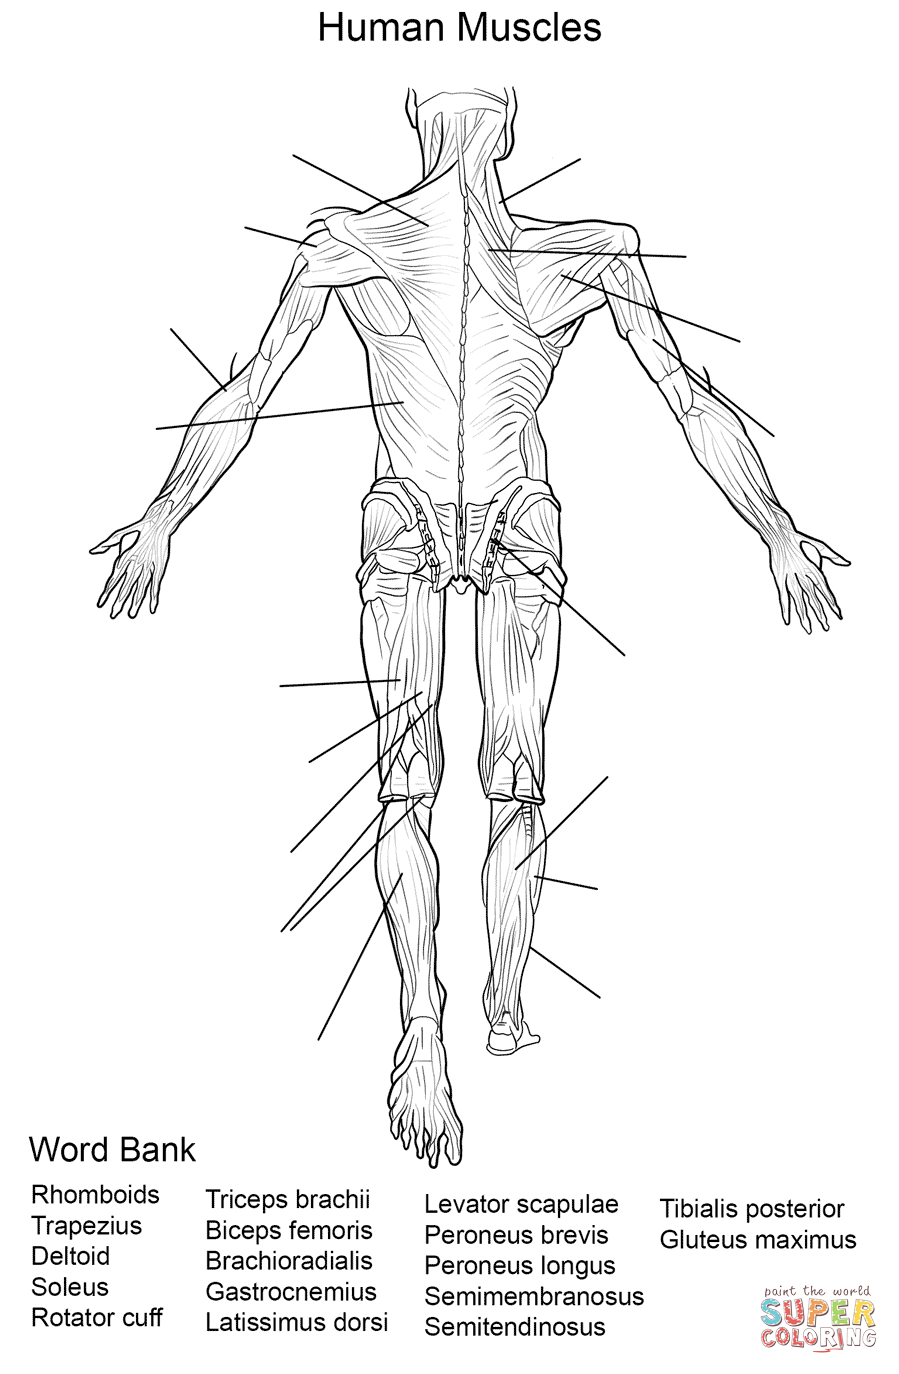 Human Muscles Back View Worksheet Coloring Page